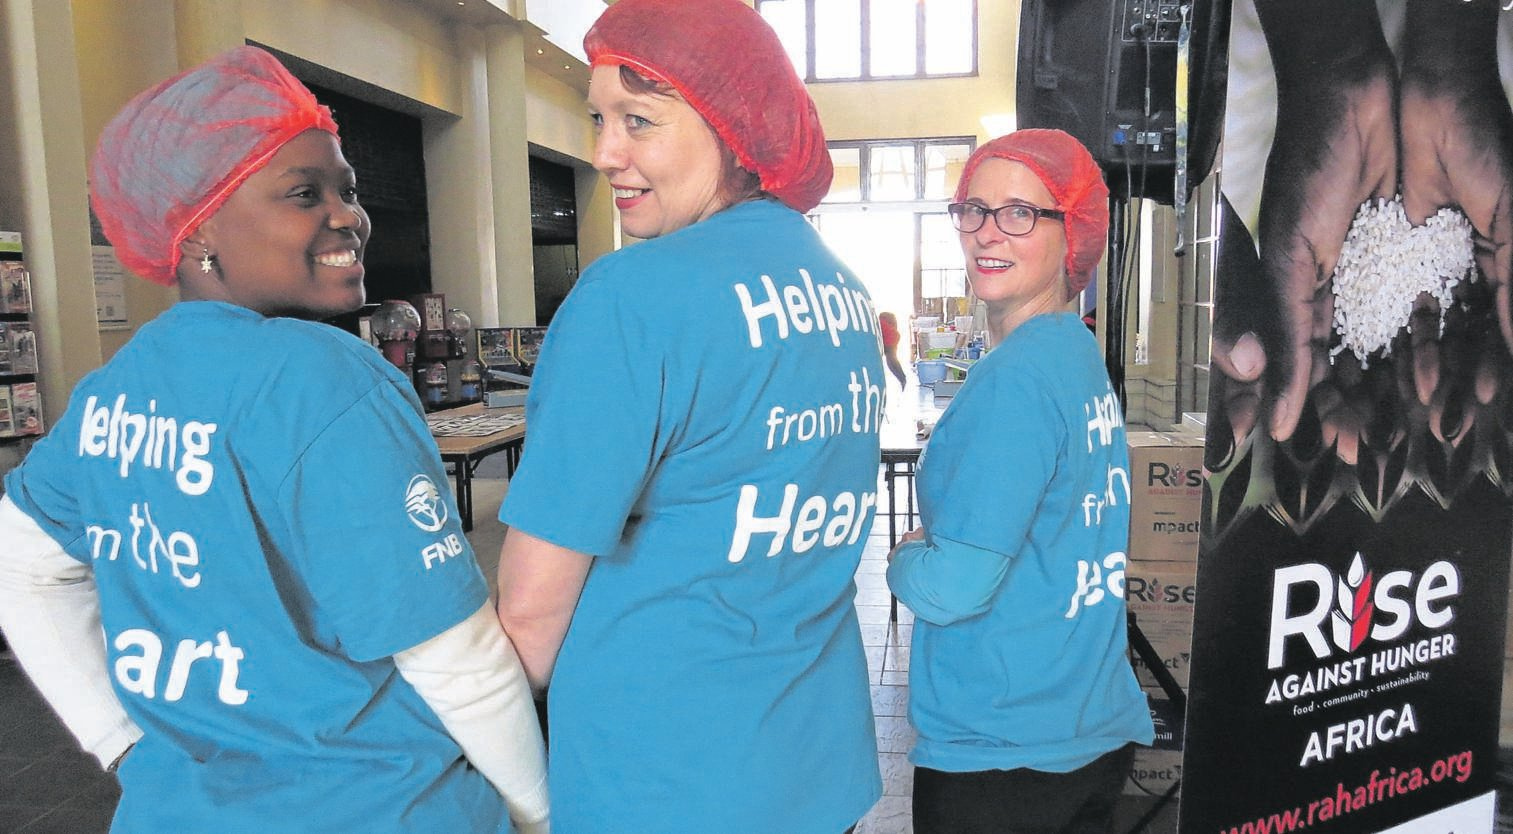 Volunteers of FNB gave up 67 minutes of their time to participate in the Rise Against Hunger initiative on Mandela Day. From the left are Nosipho Mpiti, Marna Meyer and Selente Stander.